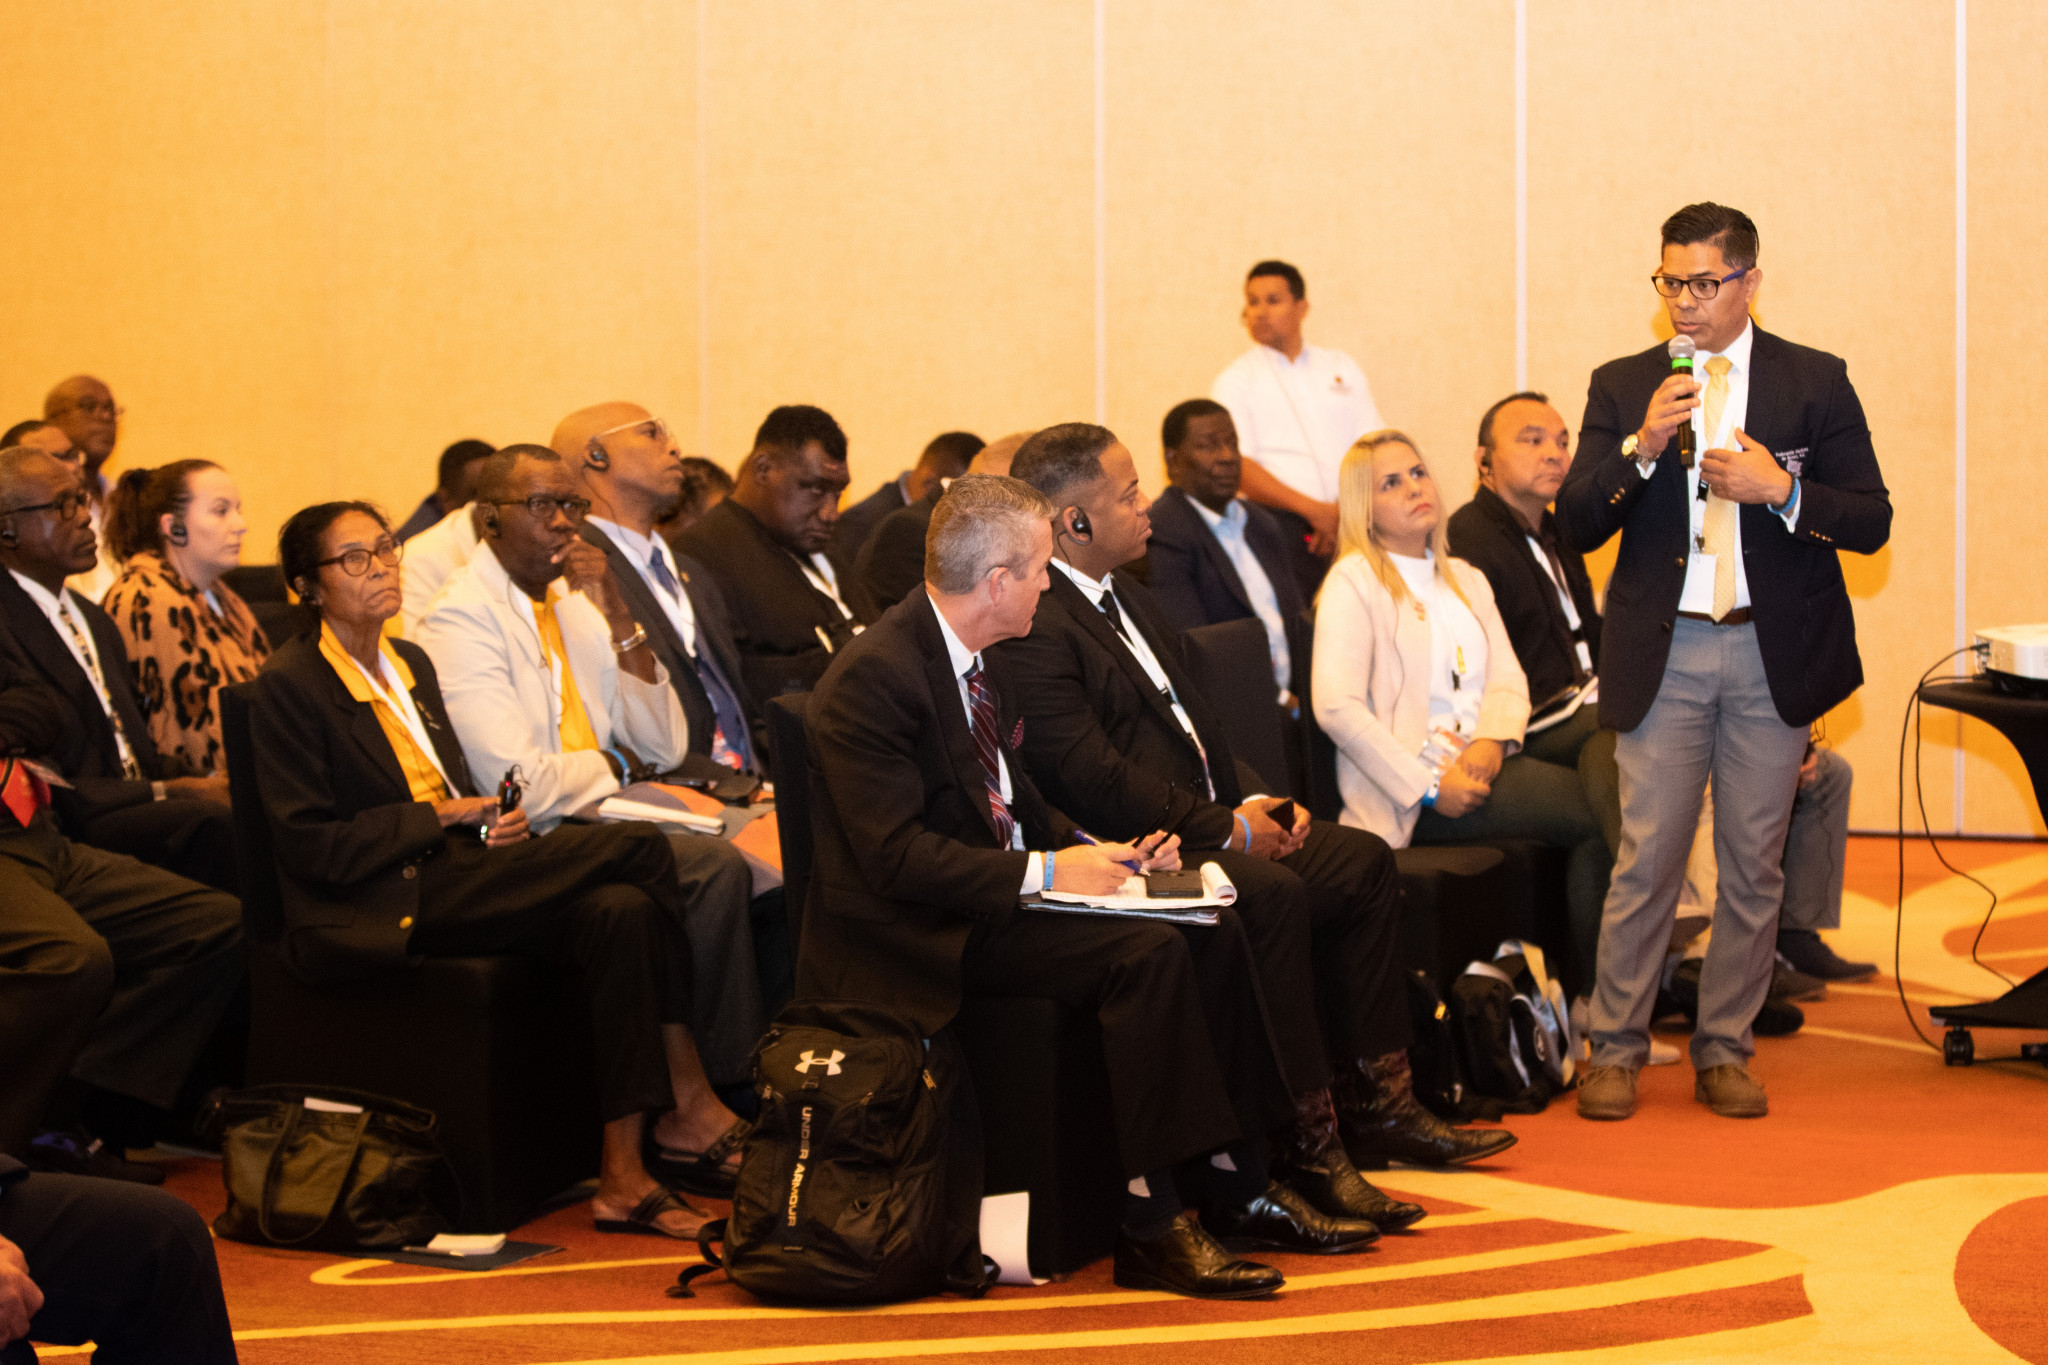 Delegates were encouraged to participate in open discussion sessions ©AIBA